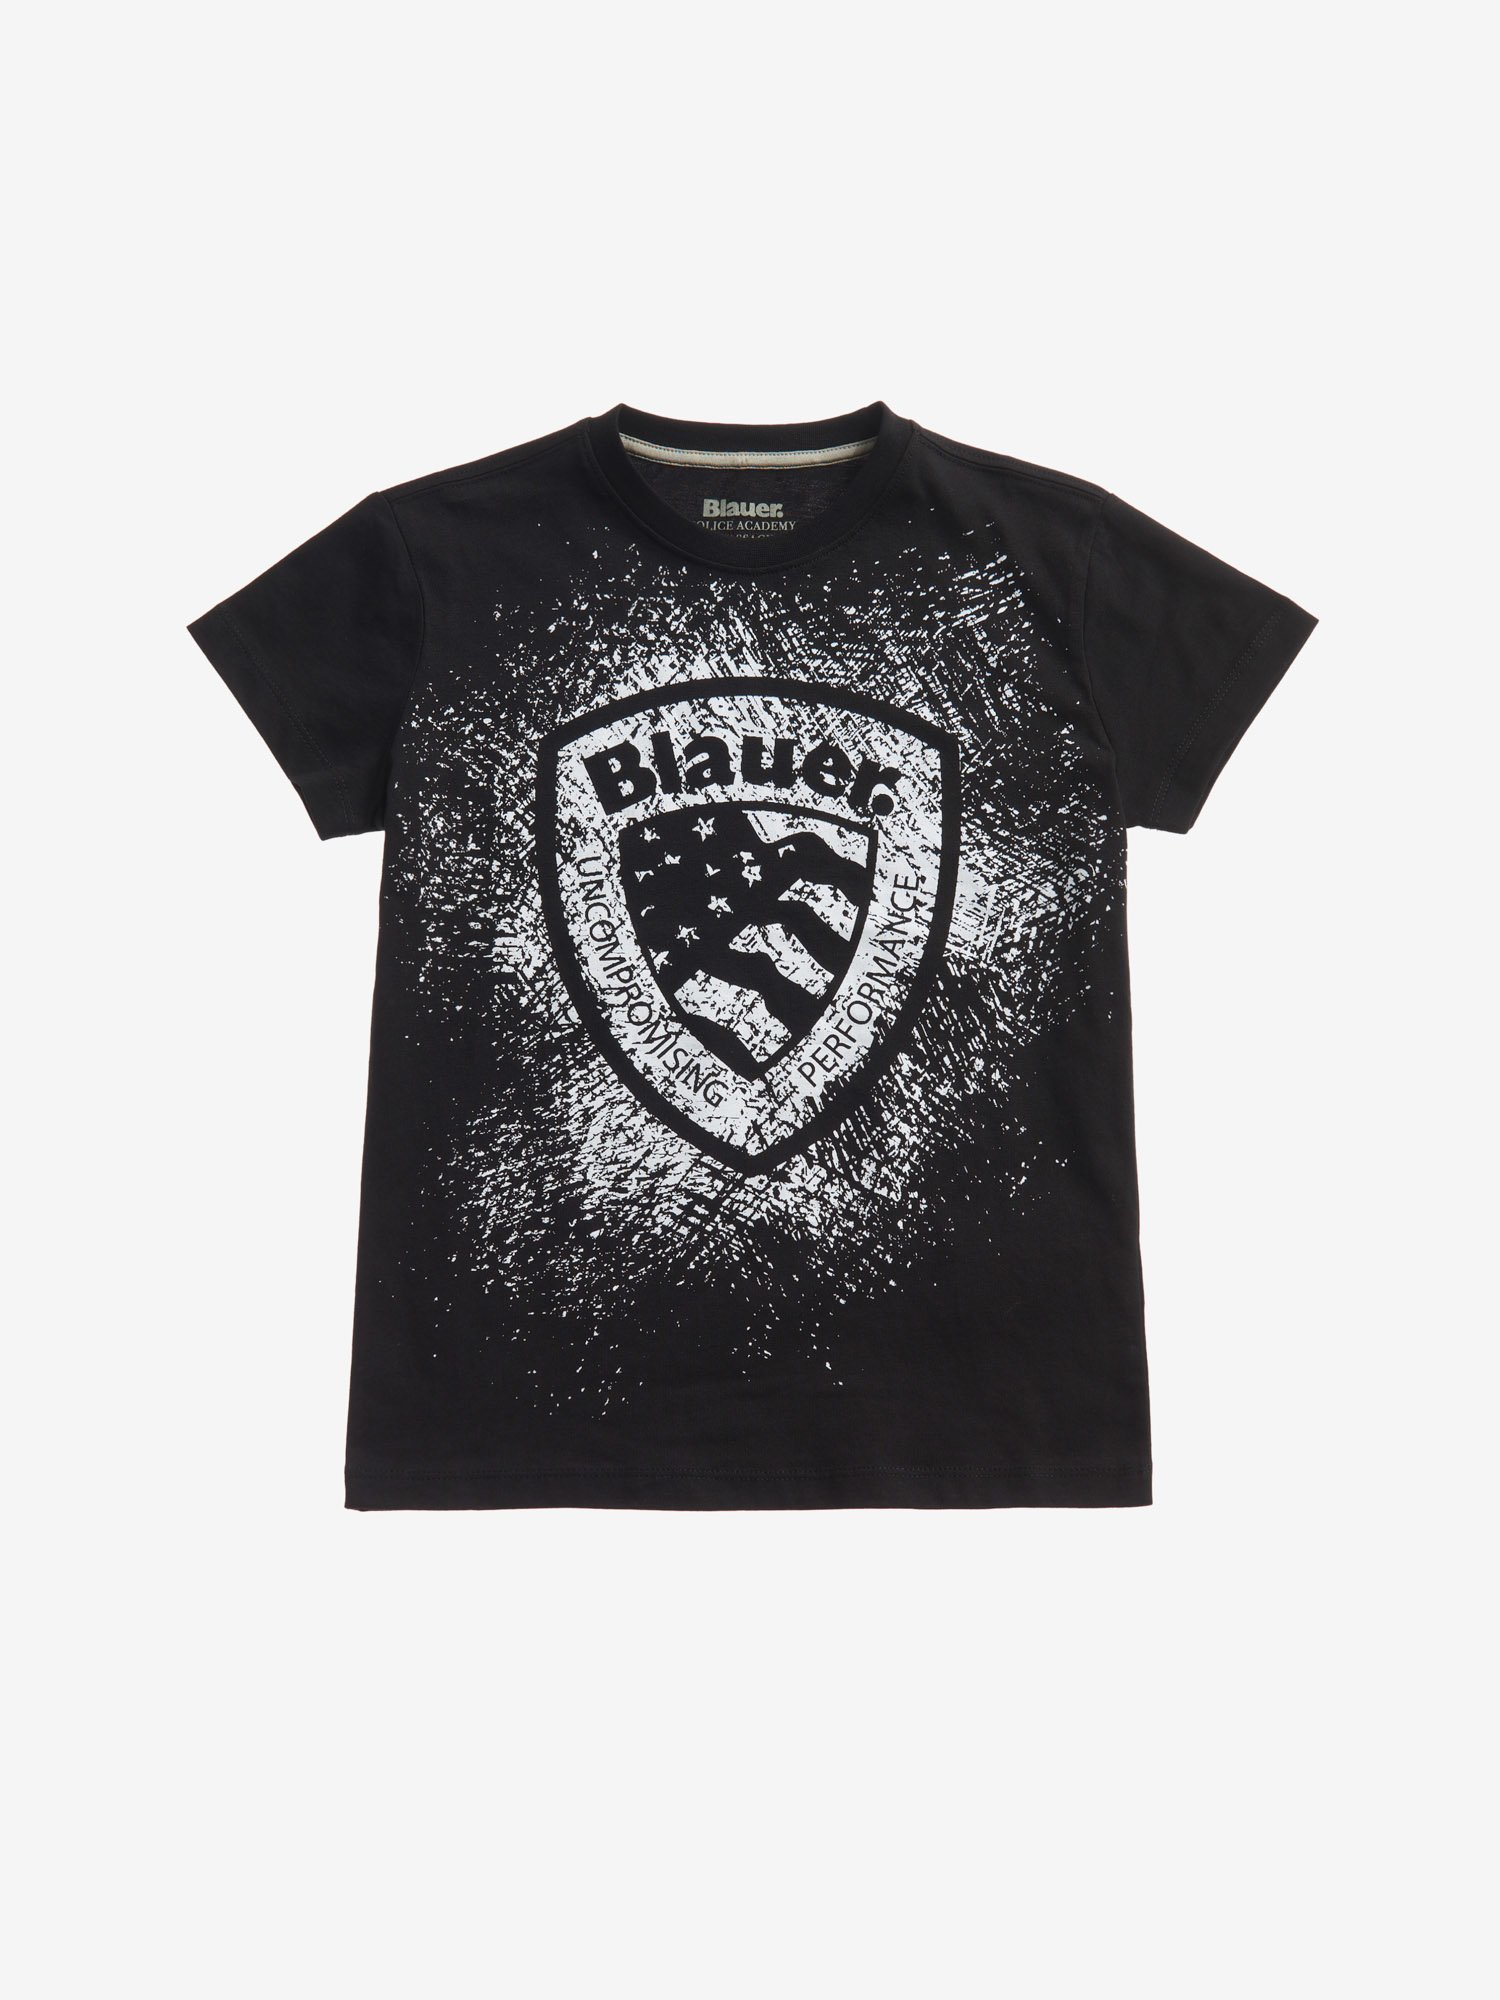 BLAUER SHIELD T-SHIRT - Blauer